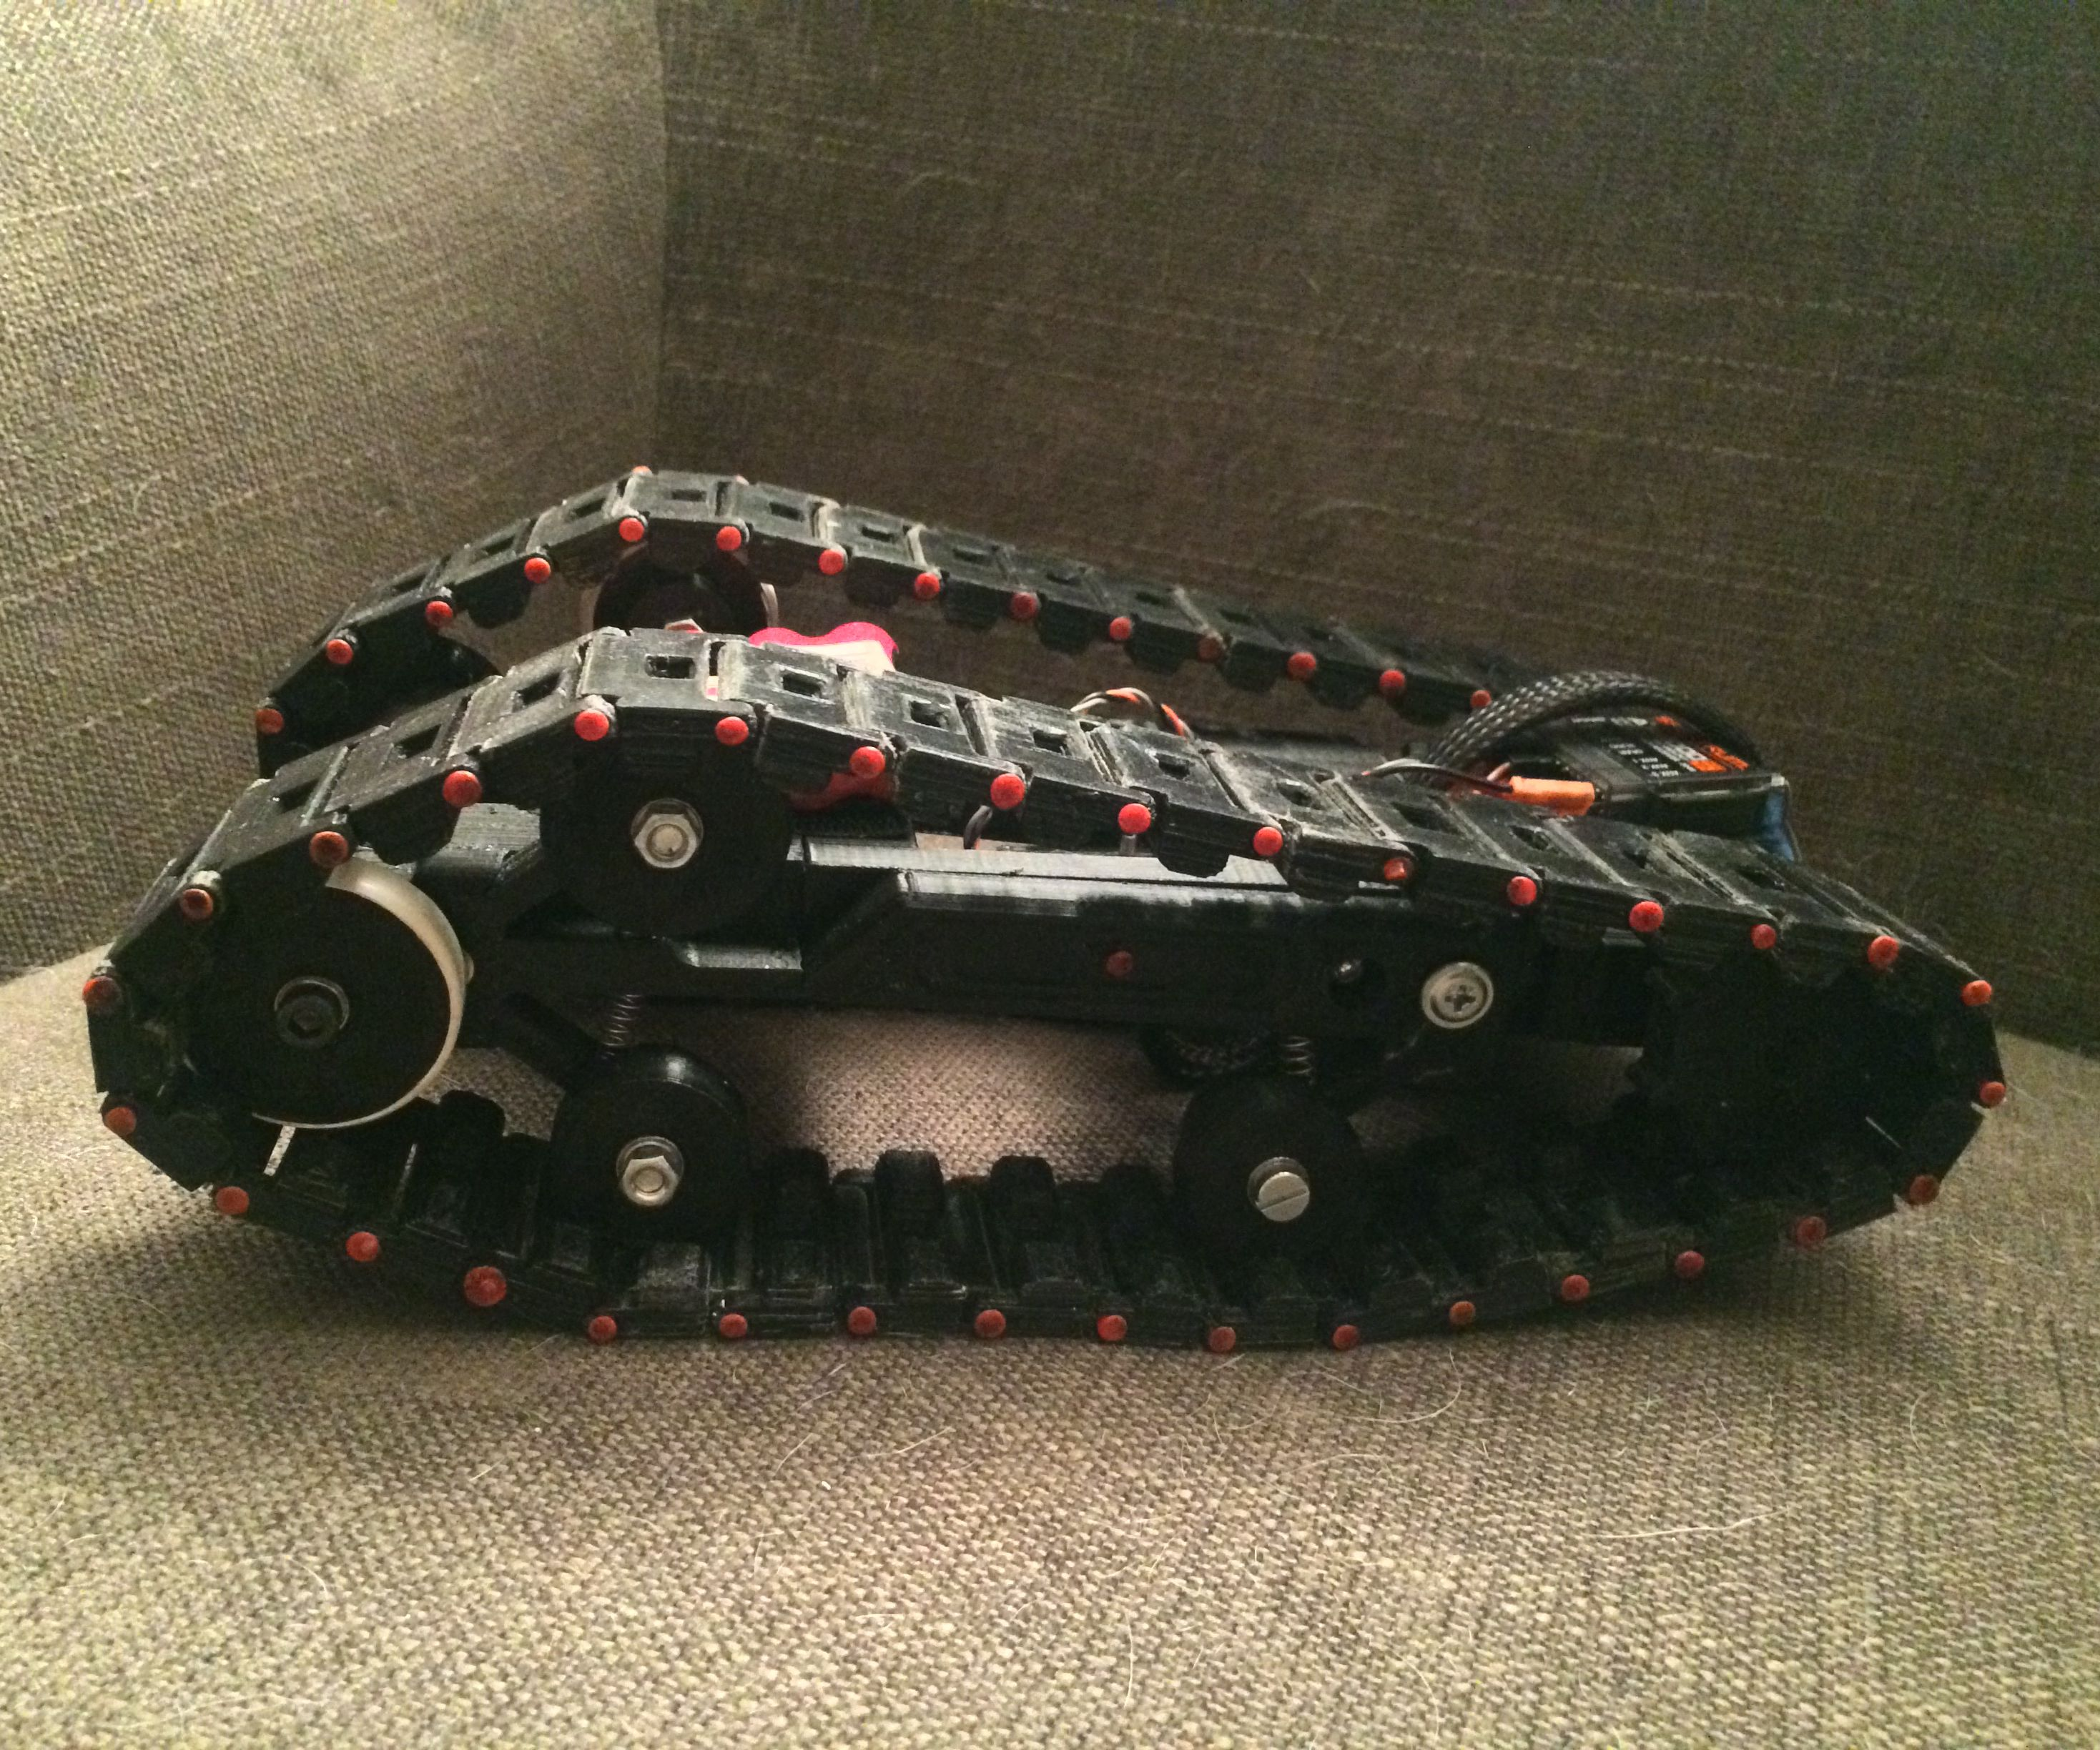 3D Printed Servo driven tracked rover w/suspensions (self tightning belts)